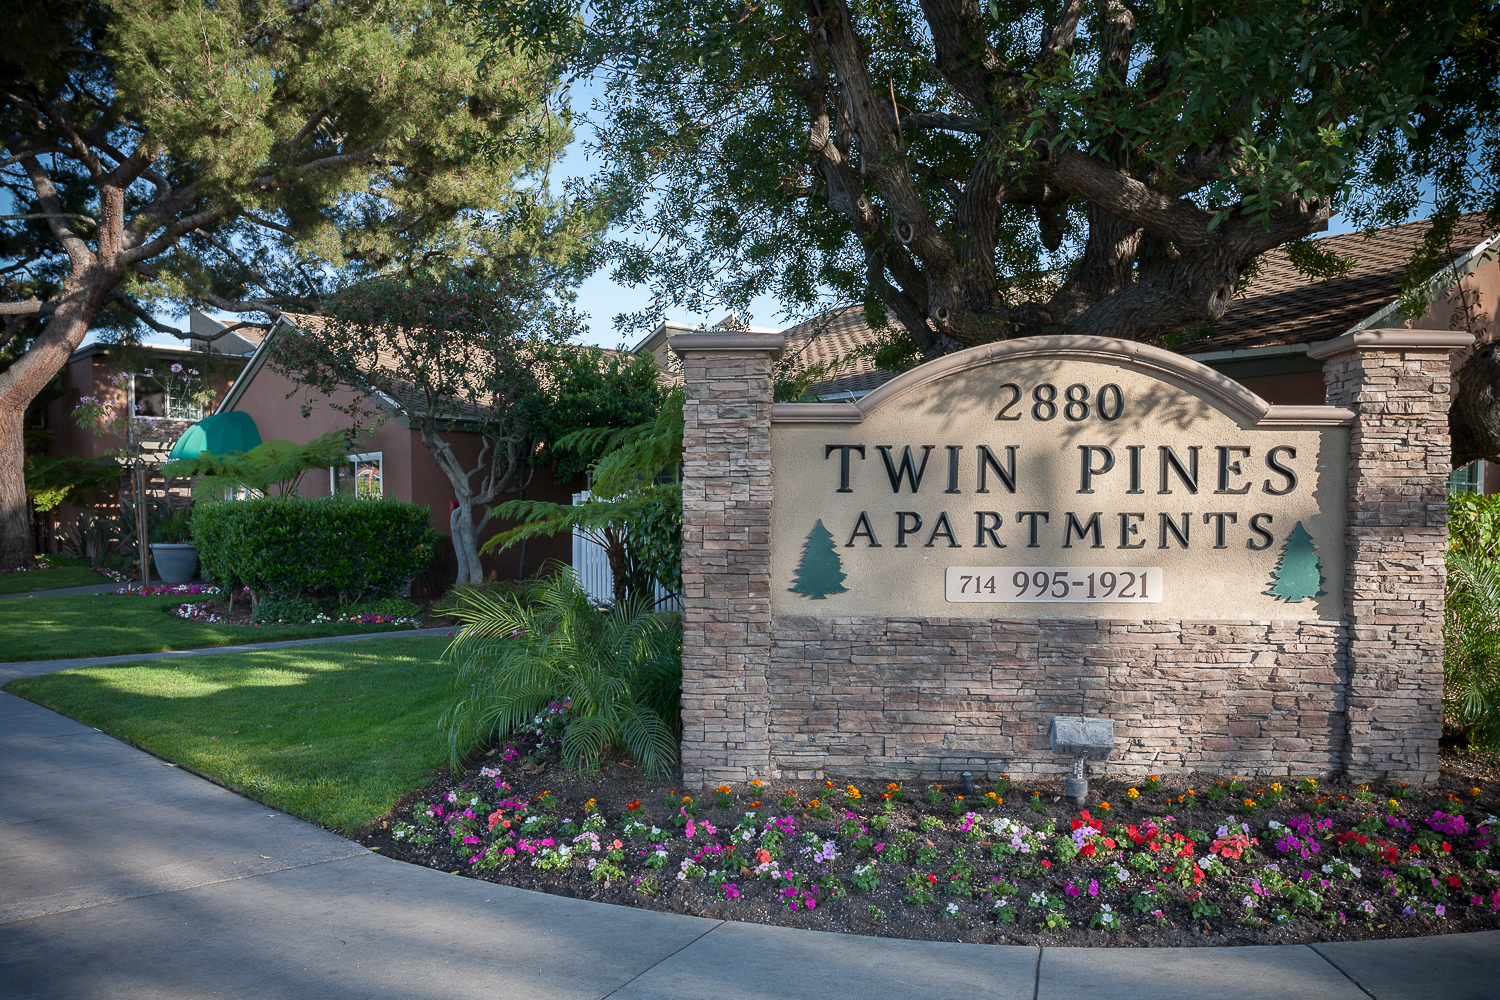 Call Now And Schedule Your Tour At Twin Pines Apartments In Anaheim, CA.